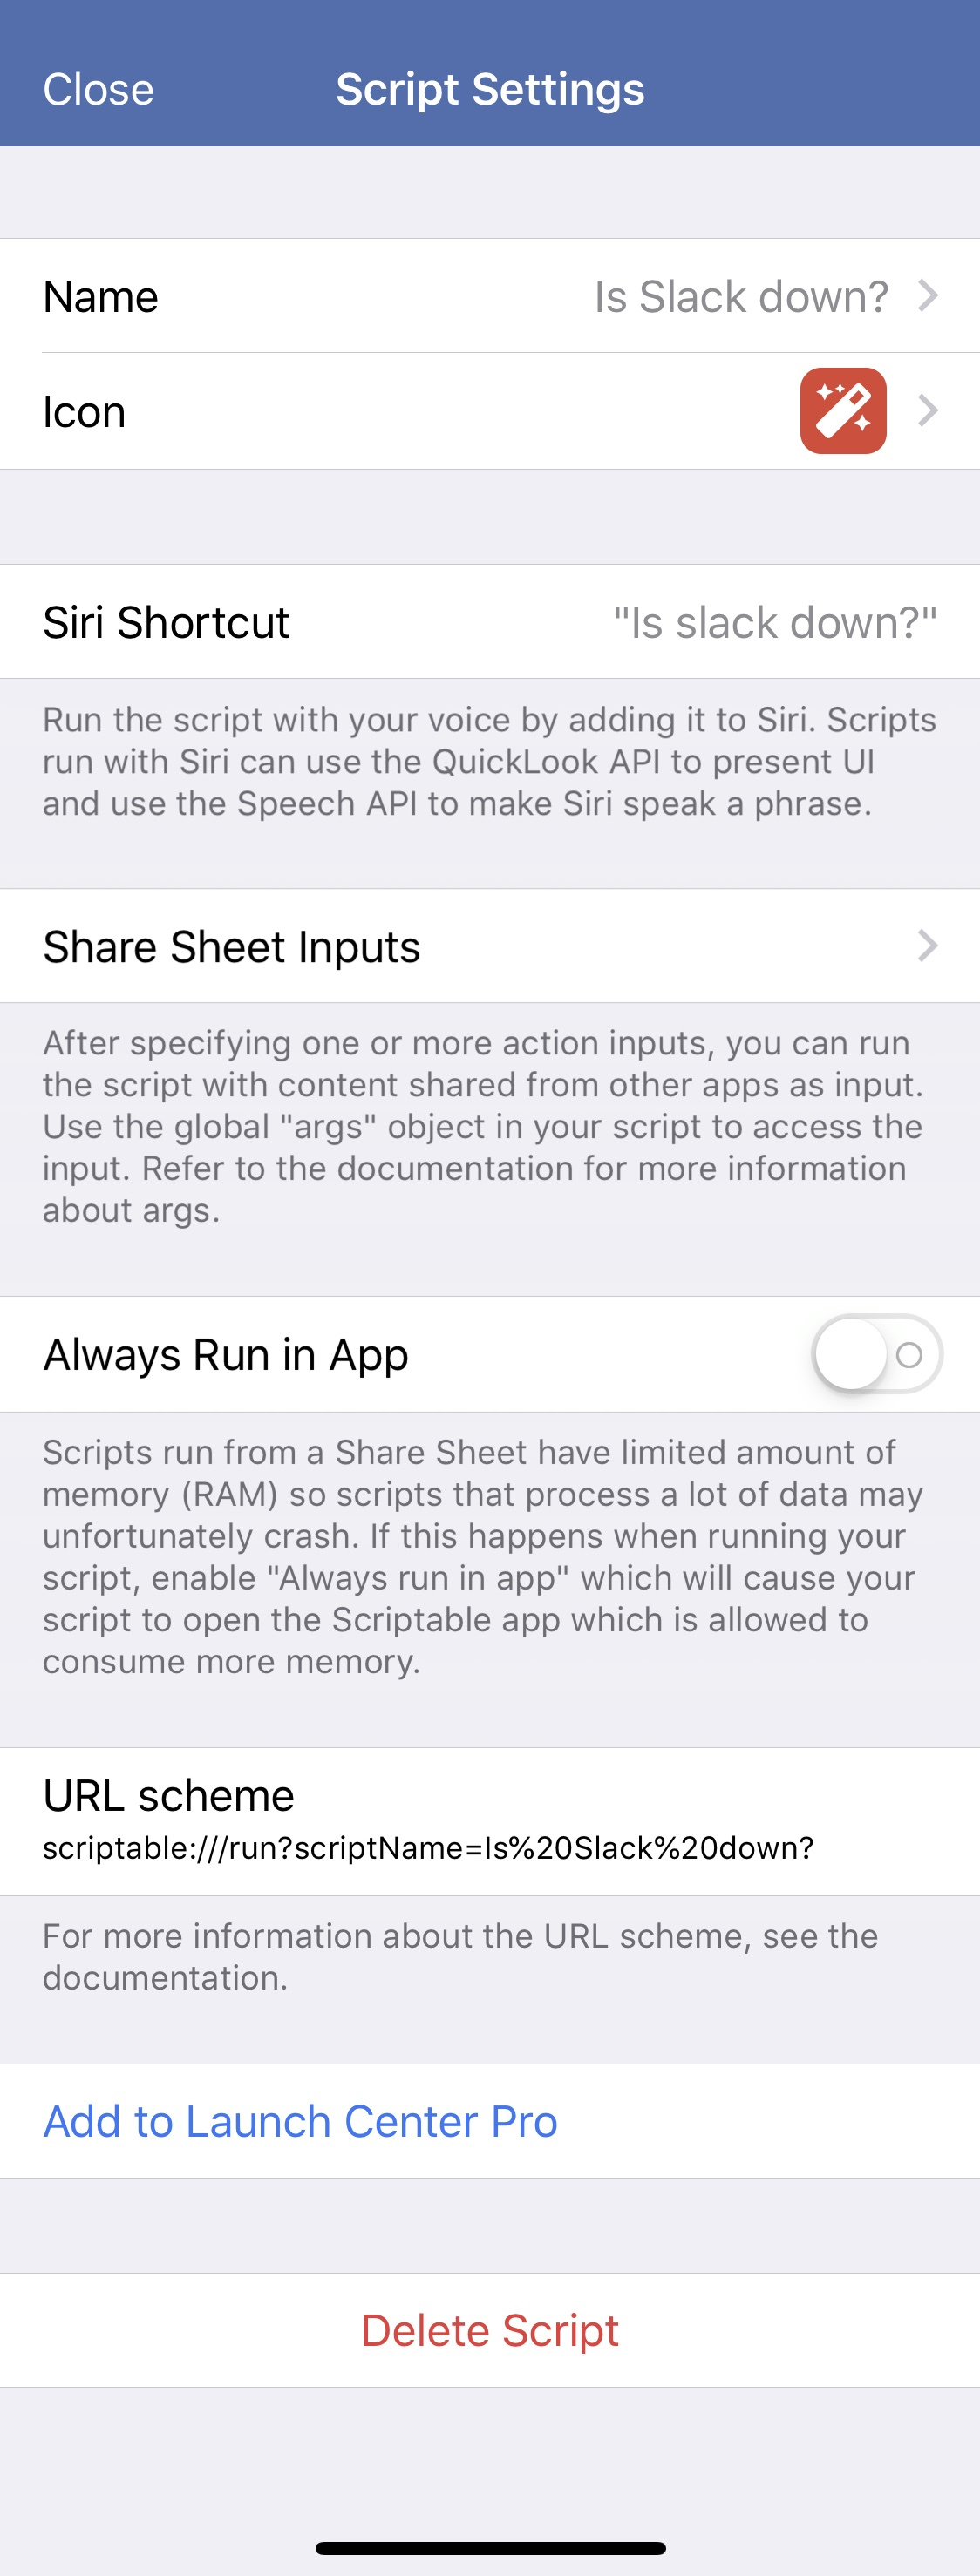 Scriptable: Use JavaScript to control your iPhone – Rosemary